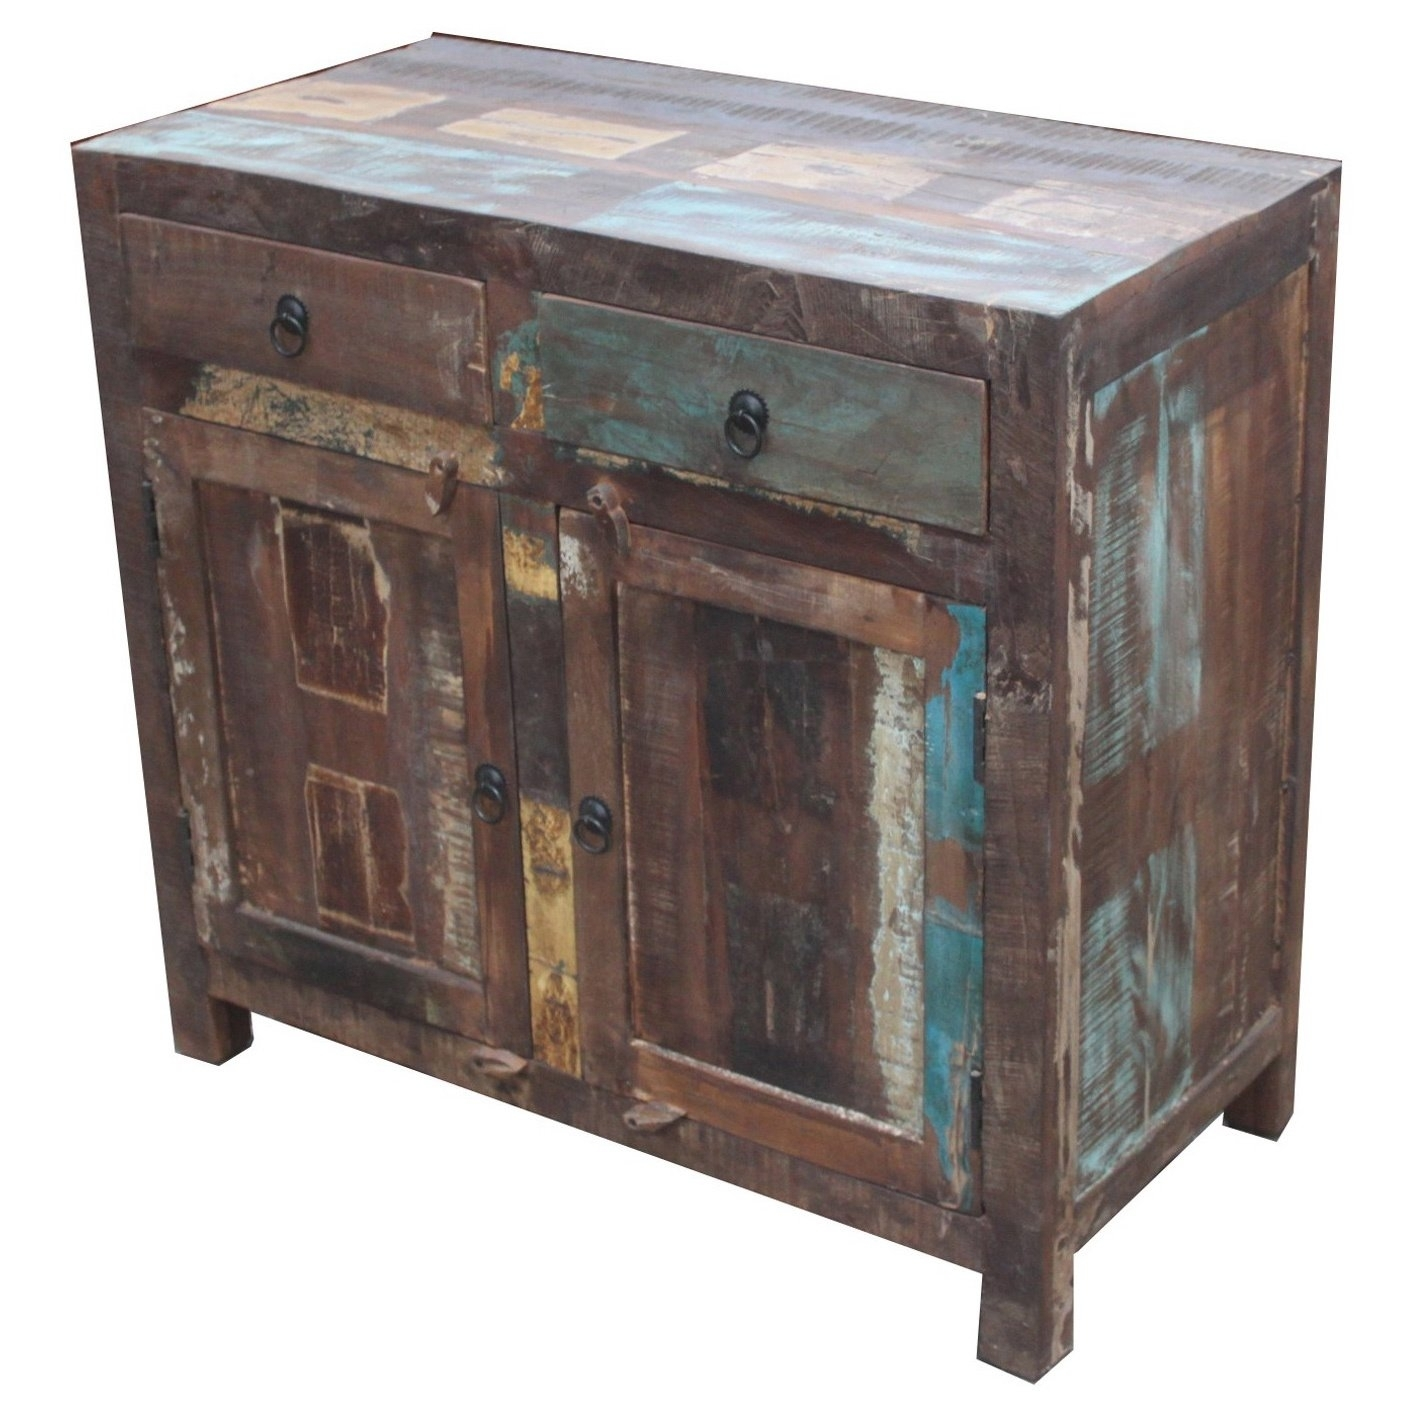 Shop Handmade Timbergirl Reclaimed Wood 2 Door Sideboard Cabinet For Most Up To Date Reclaimed Pine Turquoise 4 Door Sideboards (#15 of 20)